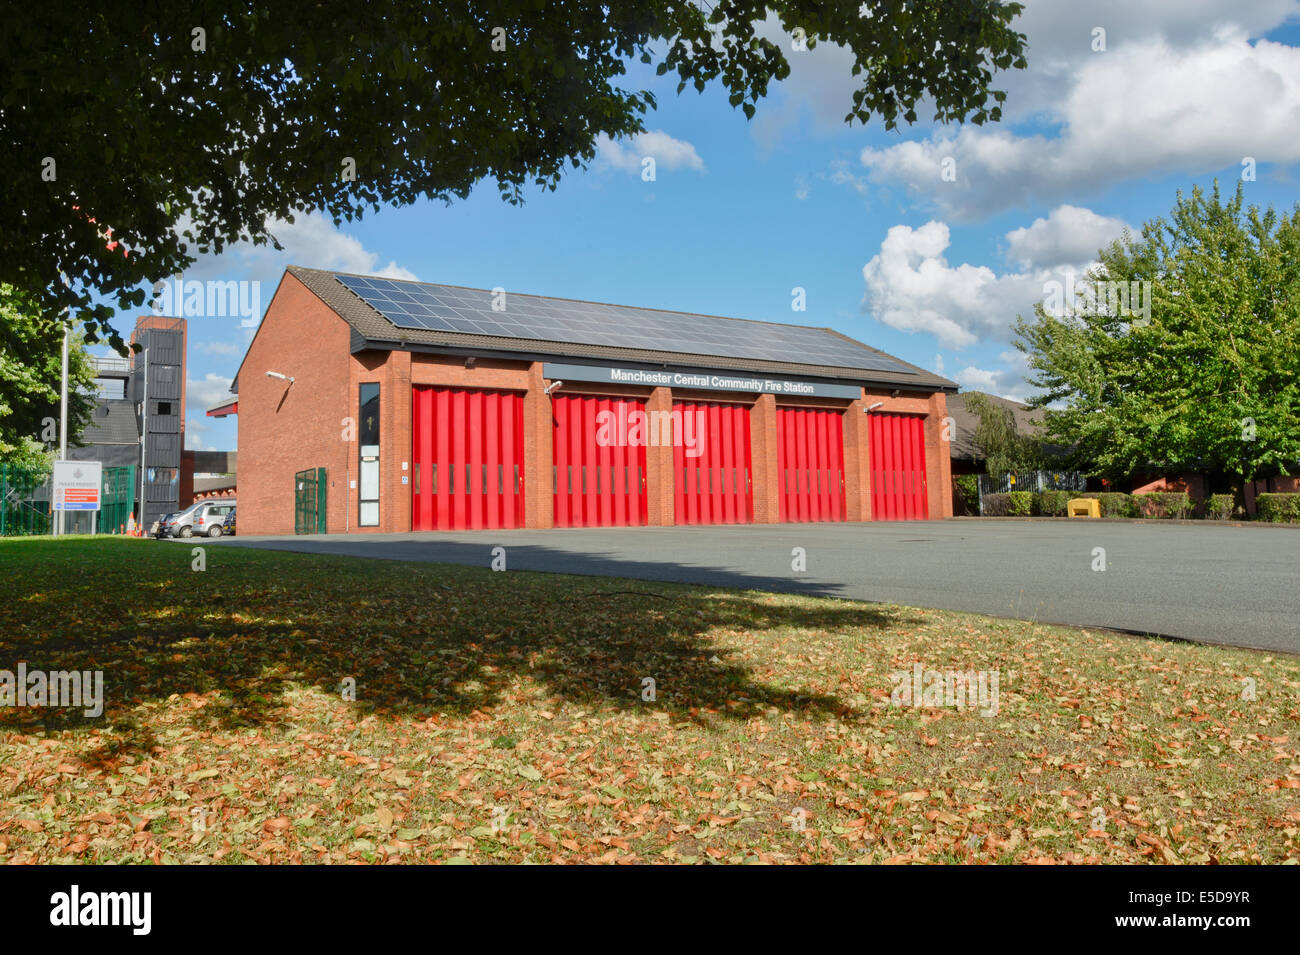 Manchester Central Fire Station located on Thompson Street in New Cross on the fringes of the city centre. - Stock Image